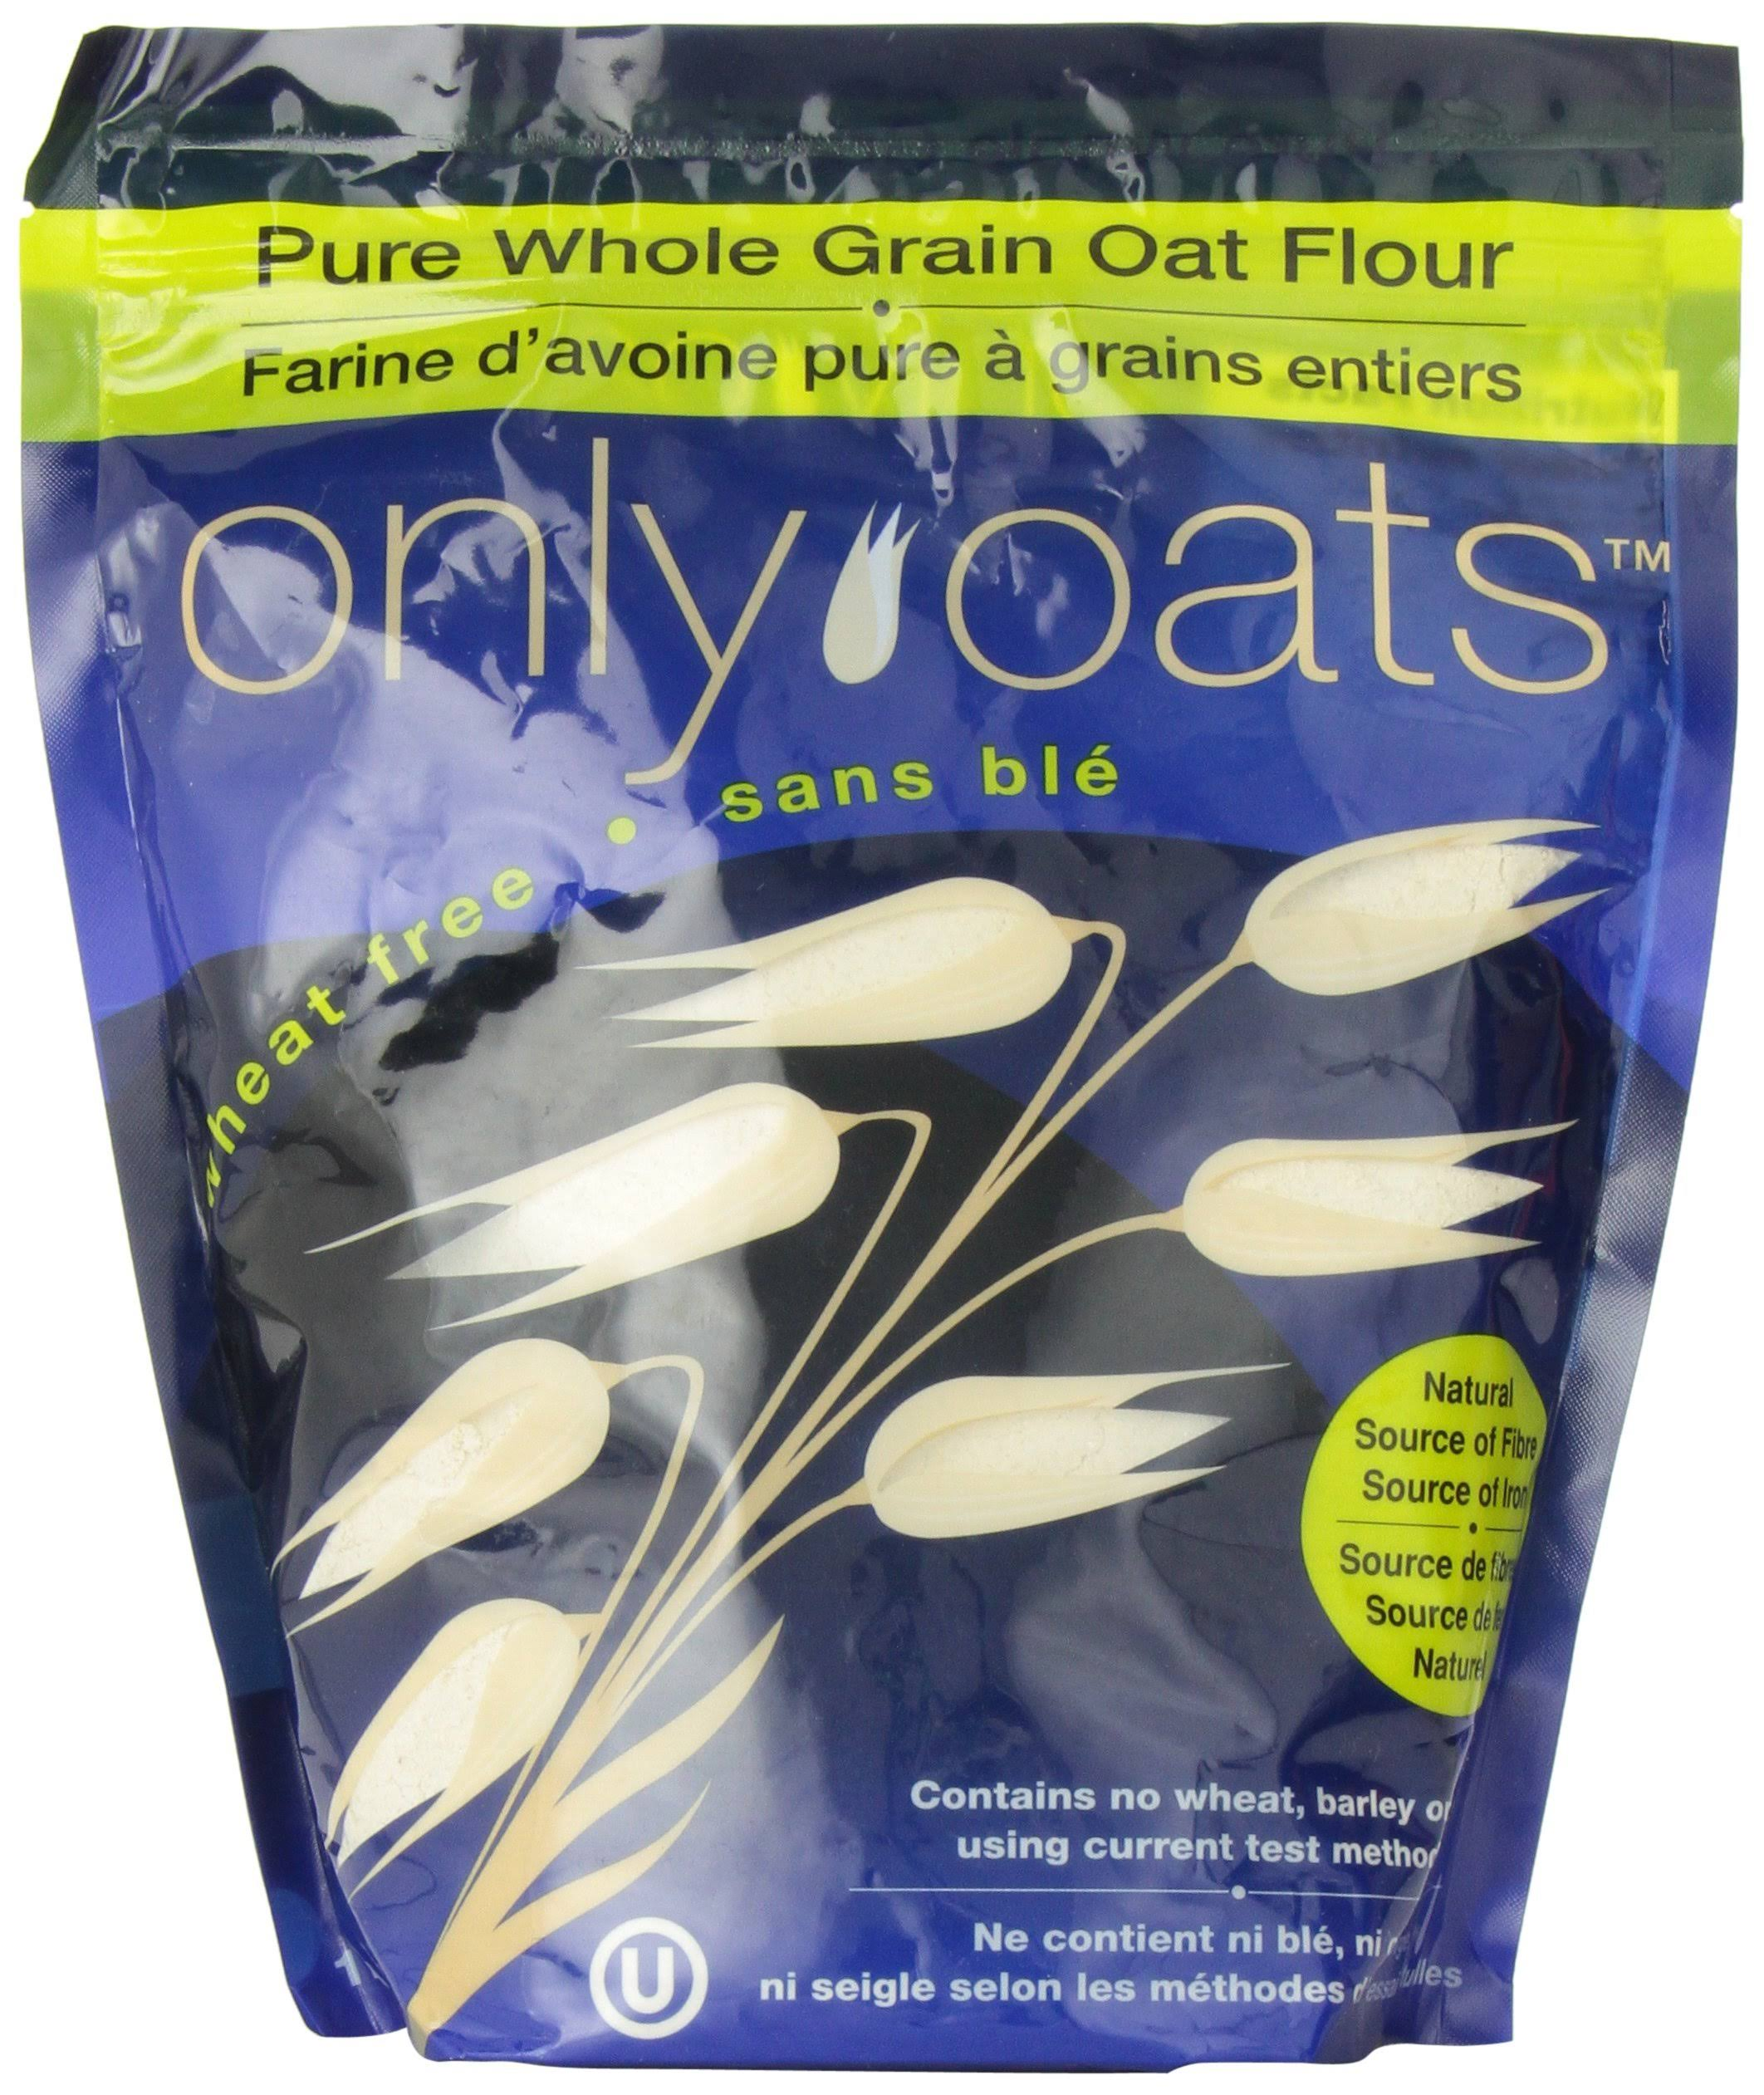 Only Oats Pure Whole Grain Oat Flour - 1kg